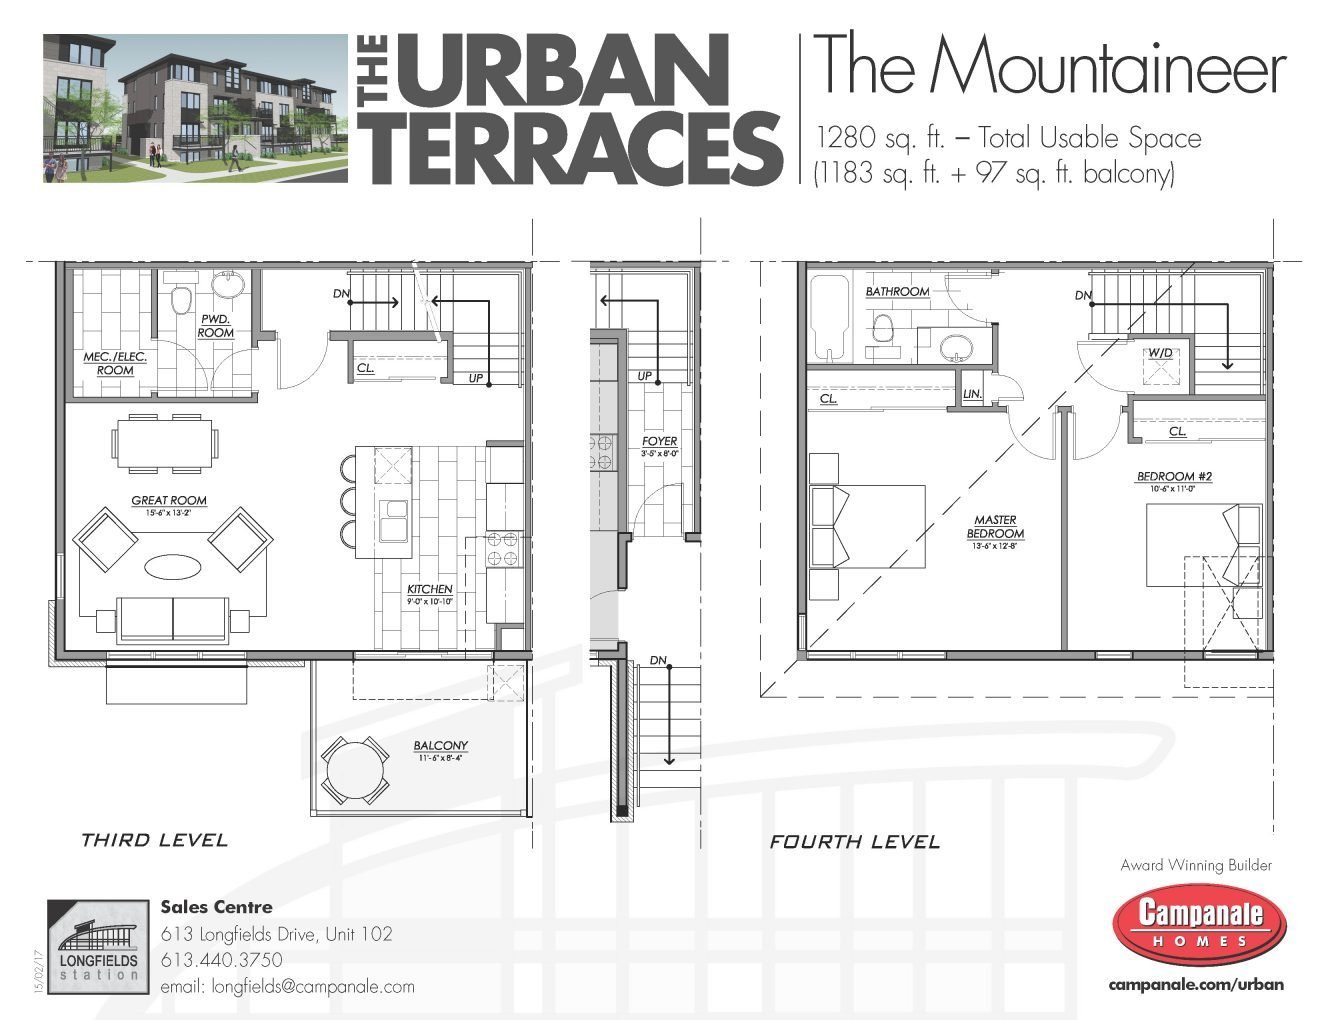 Mountaineer_Floorplan_Urban_Terrace_Campanale Homes